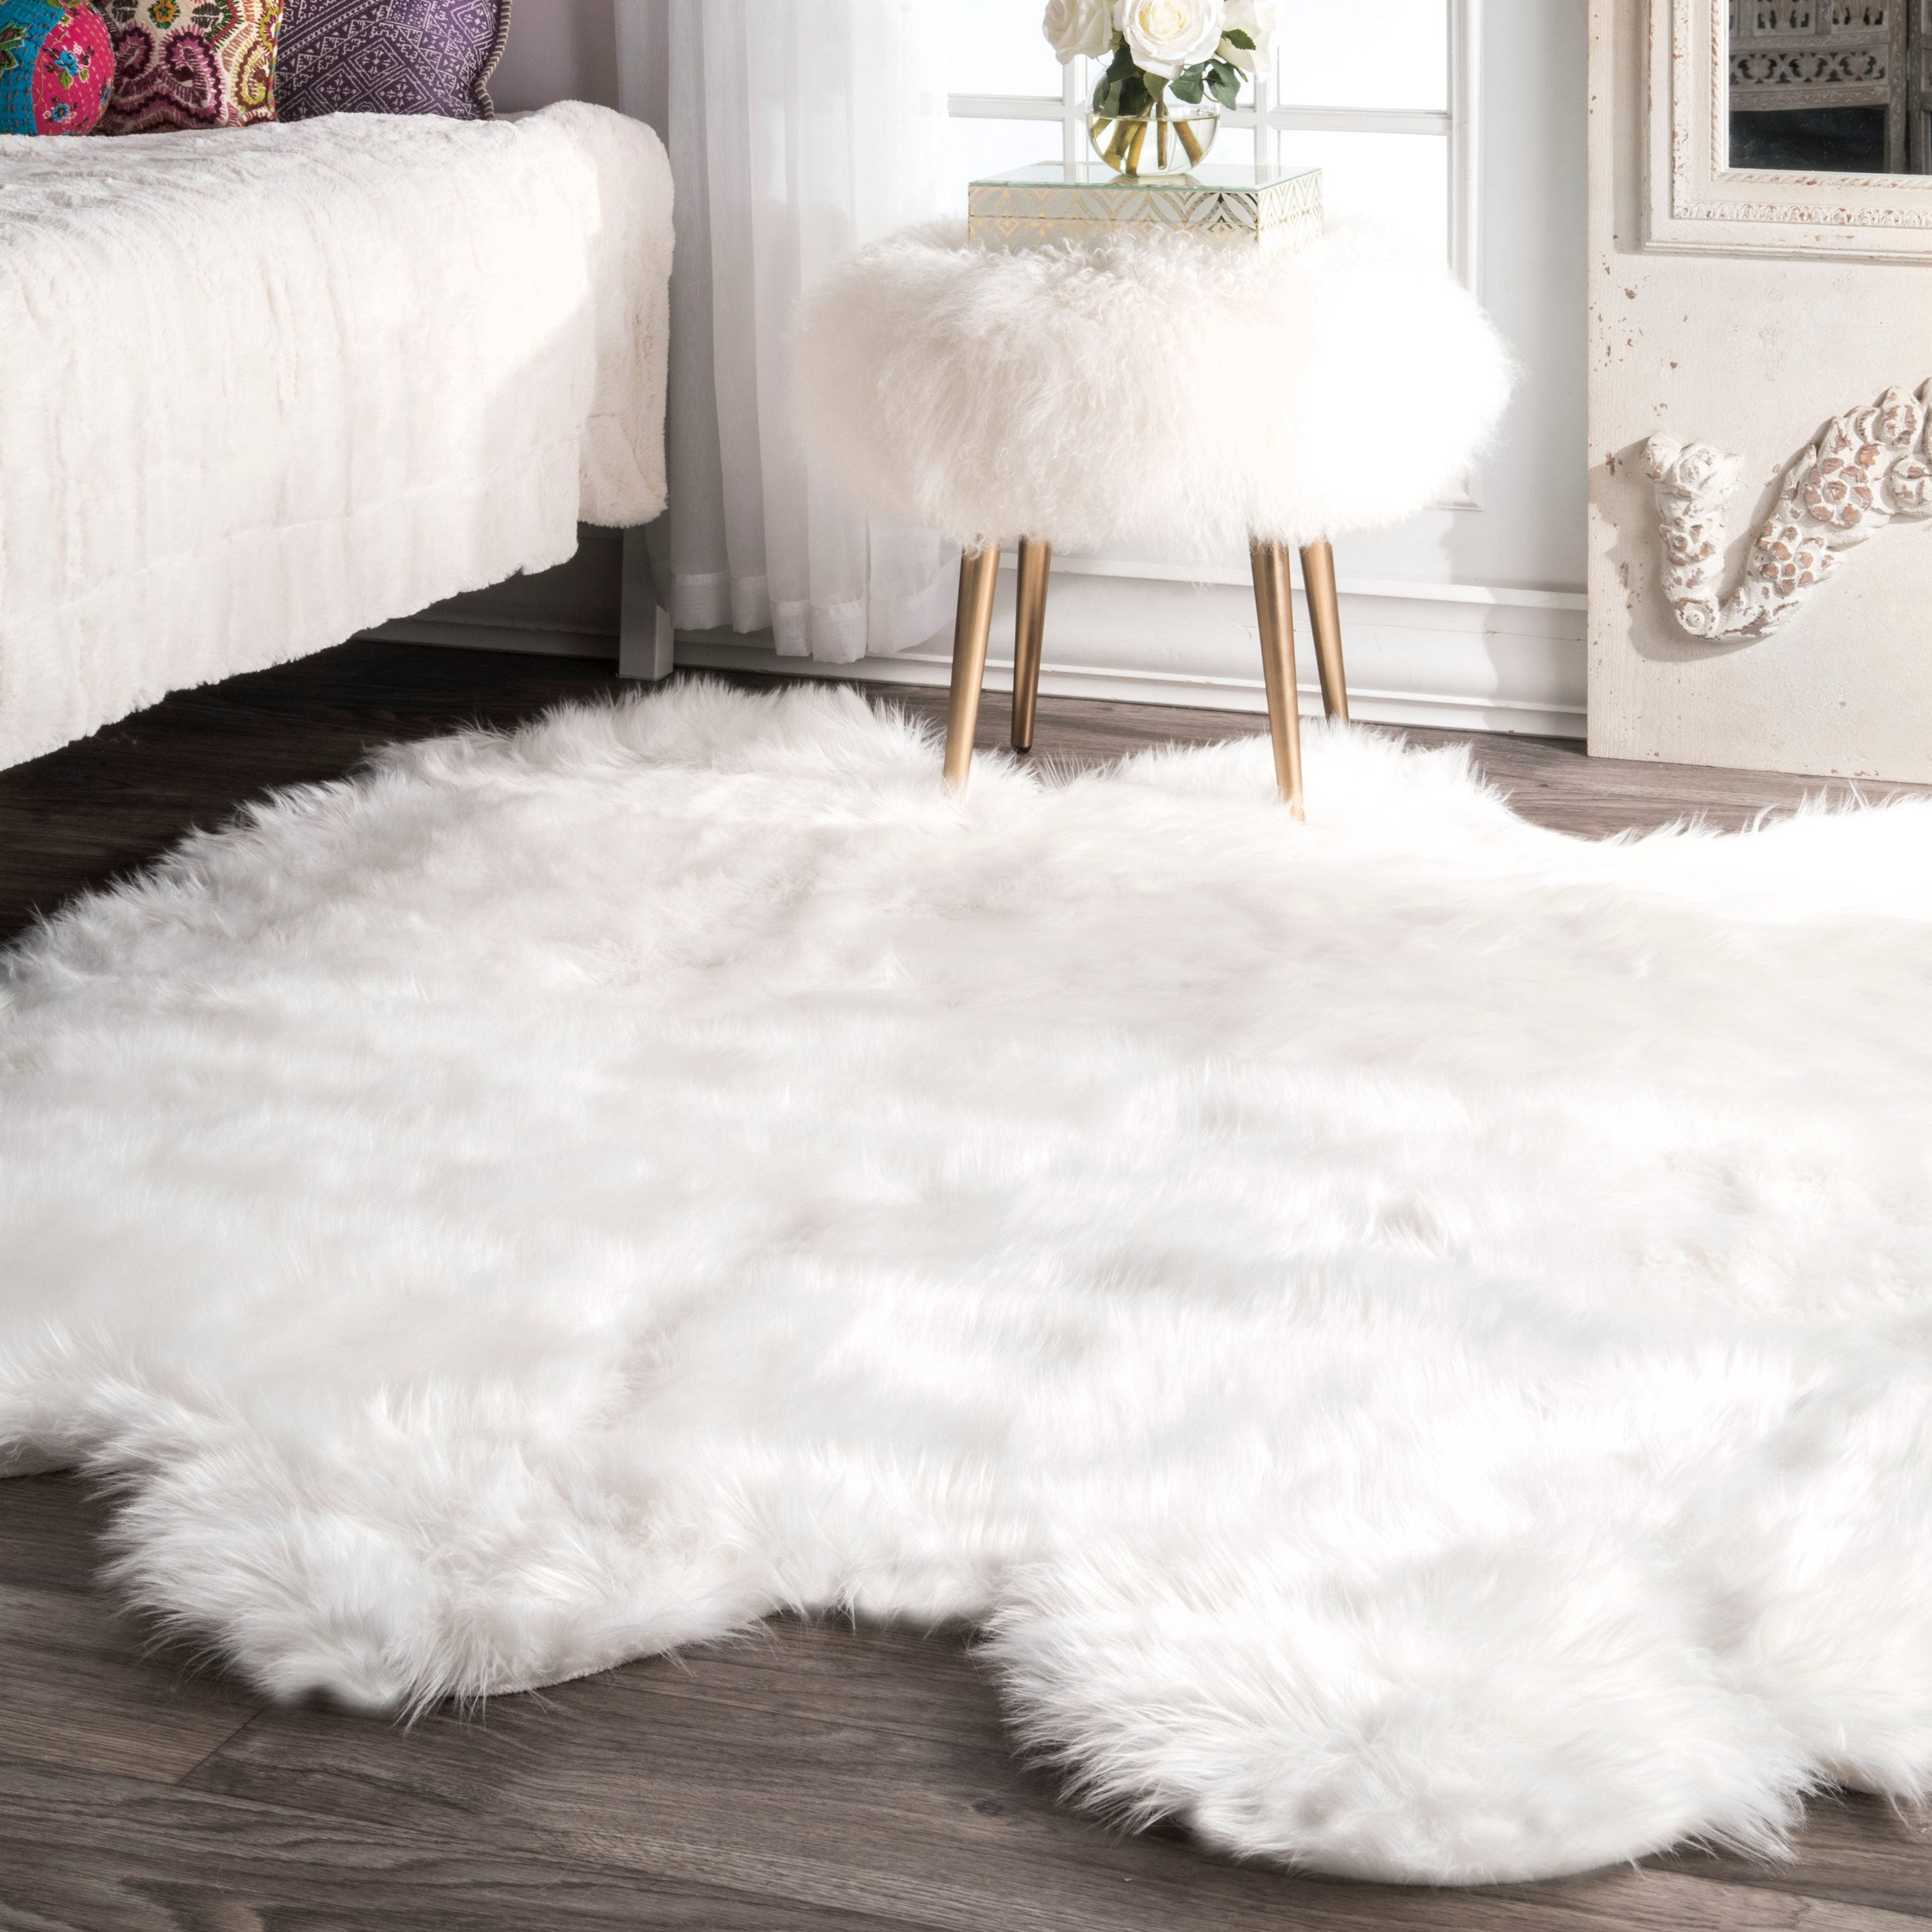 x catriona quotations rug hallway runner guides line deals soft on get find usa cheap rugs shopping at in maples made white